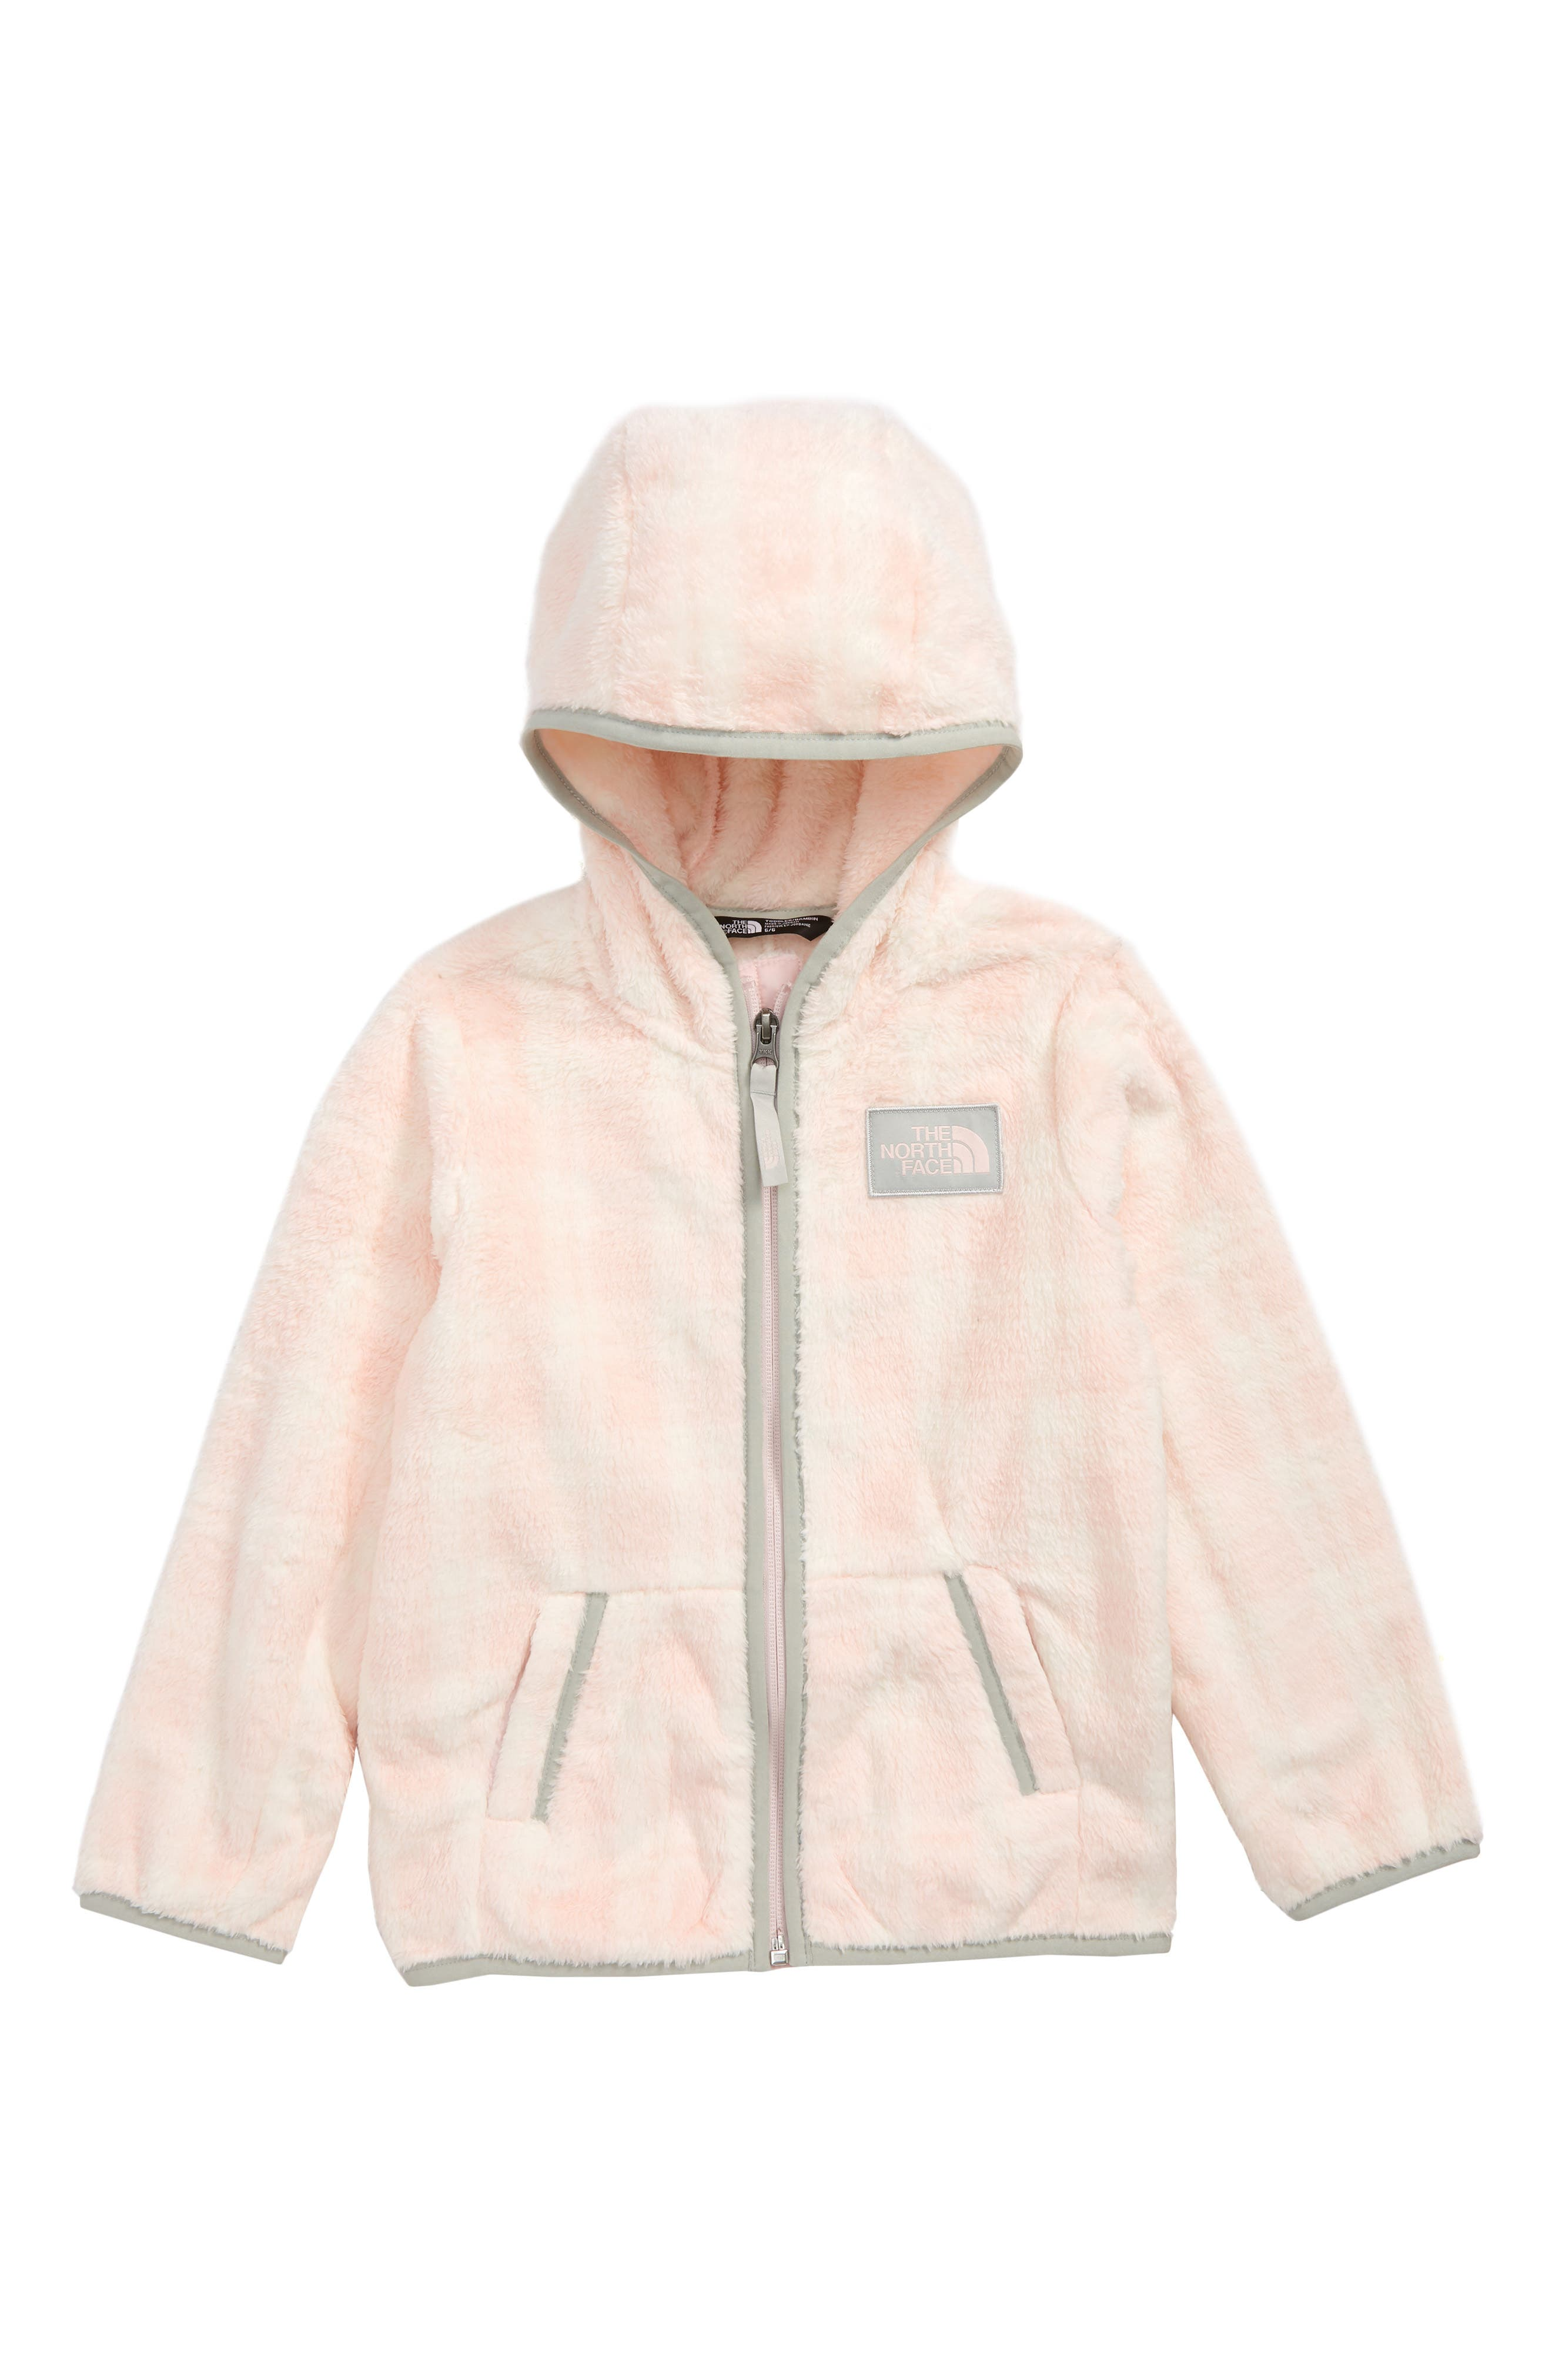 Campshire Full Zip Hoodie,                         Main,                         color, PURDY PINK PRETTY PLAID PRINT